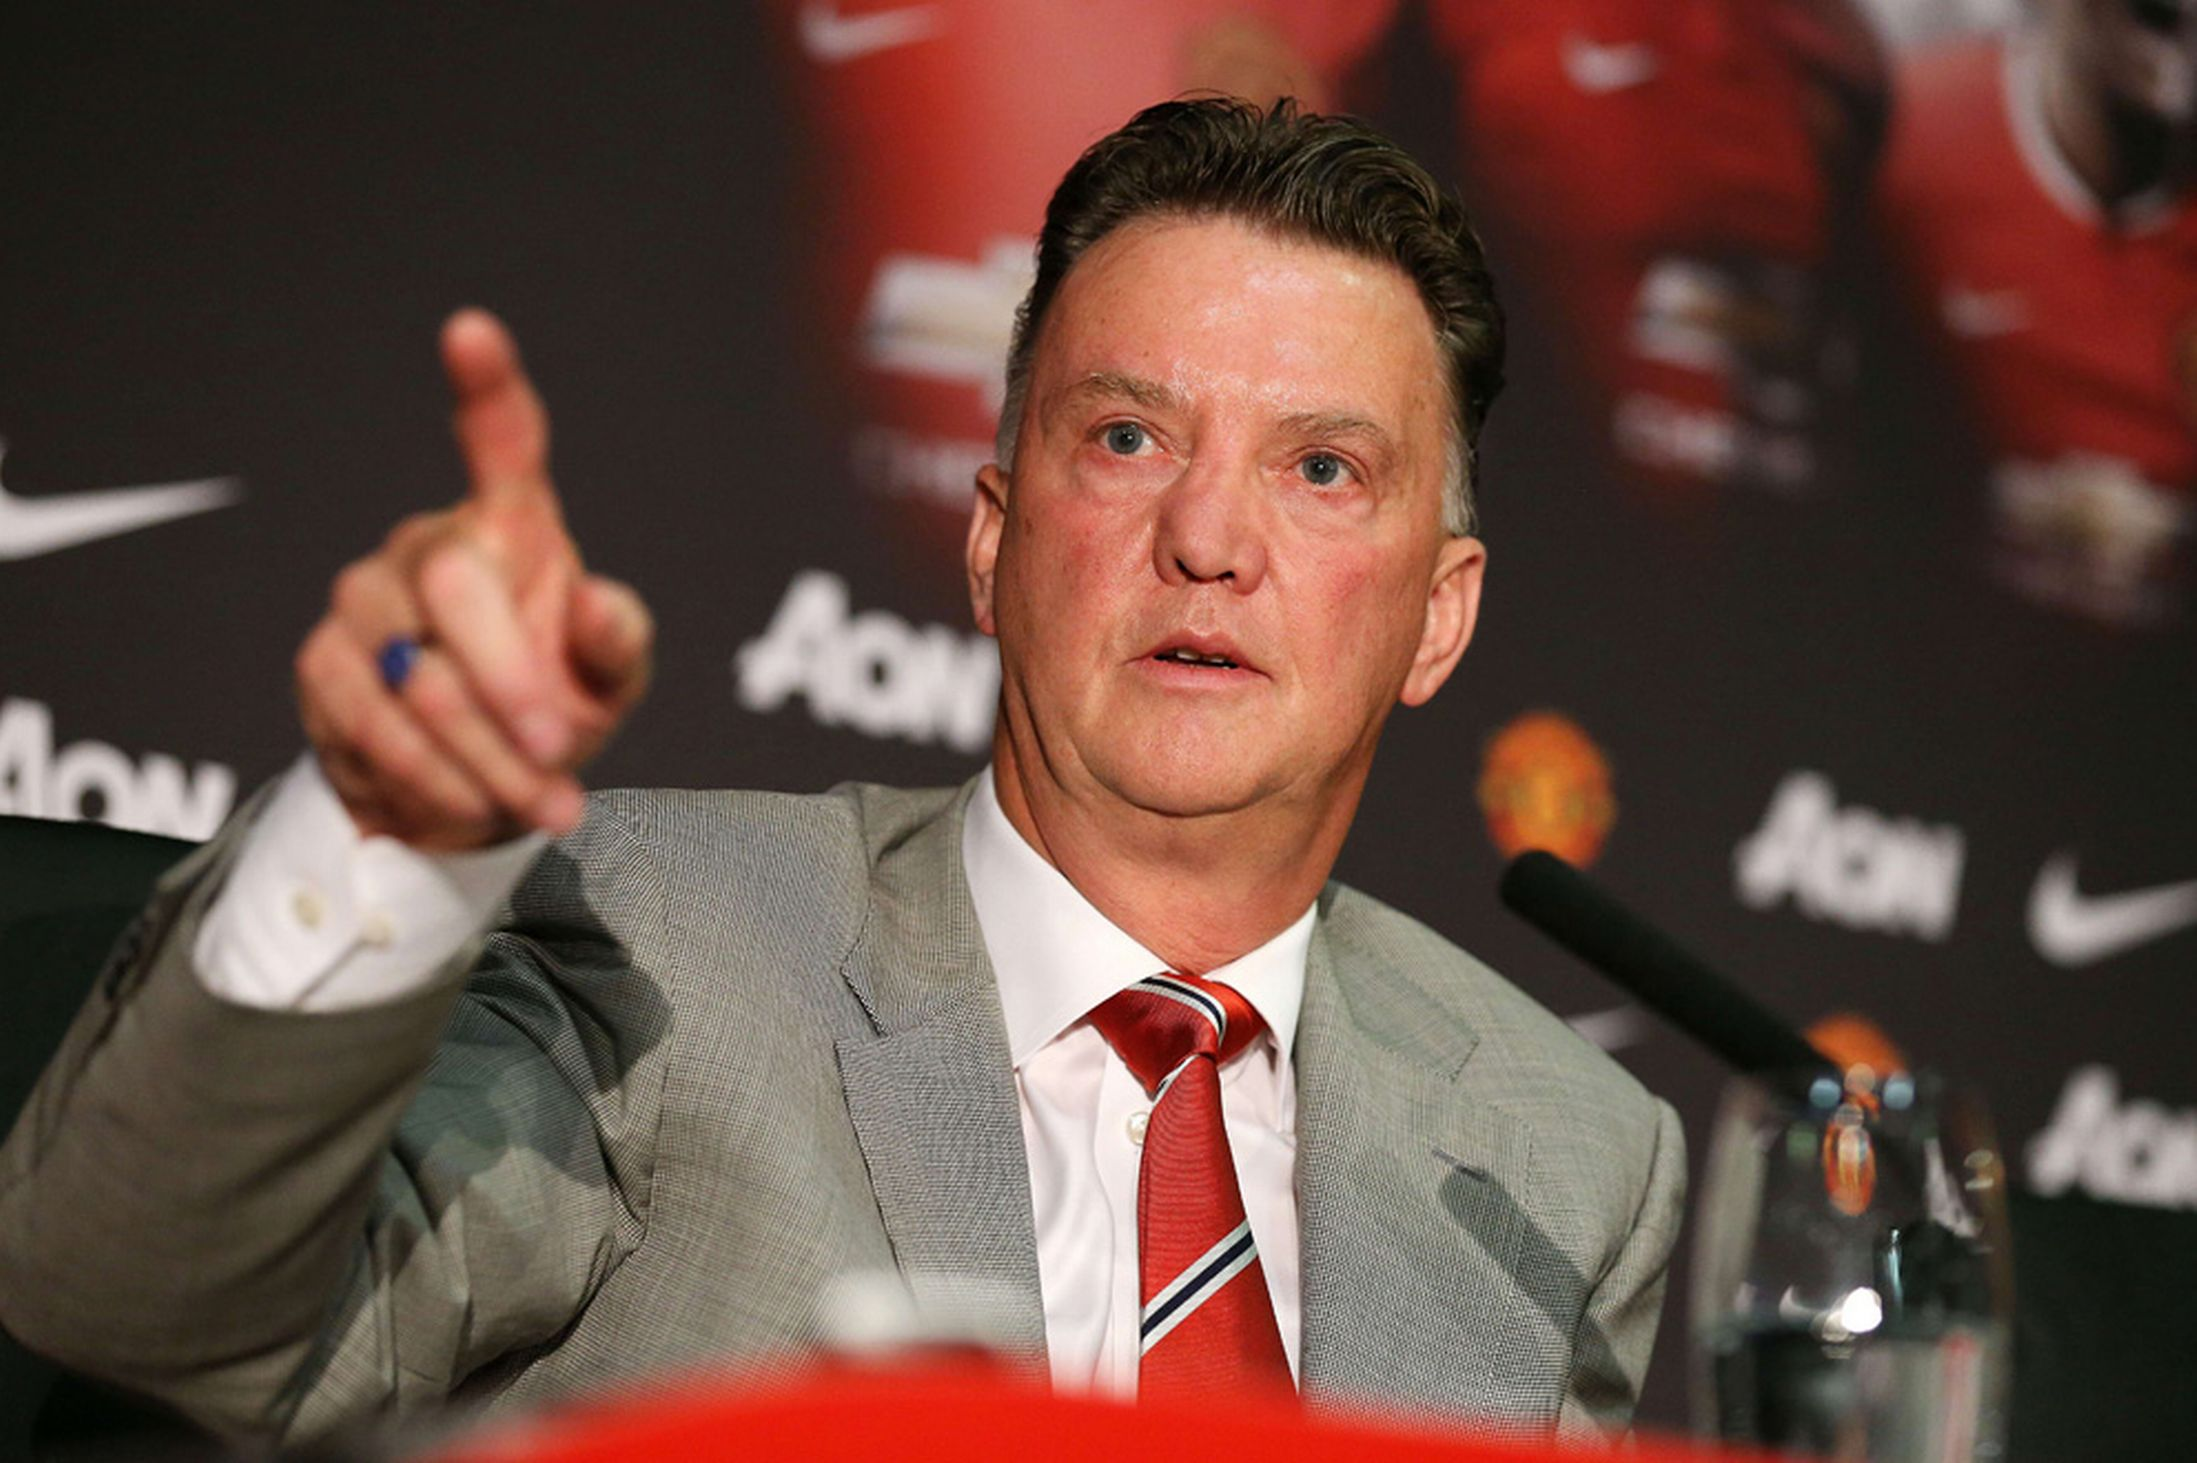 Van Gaal rules out resigning after draw